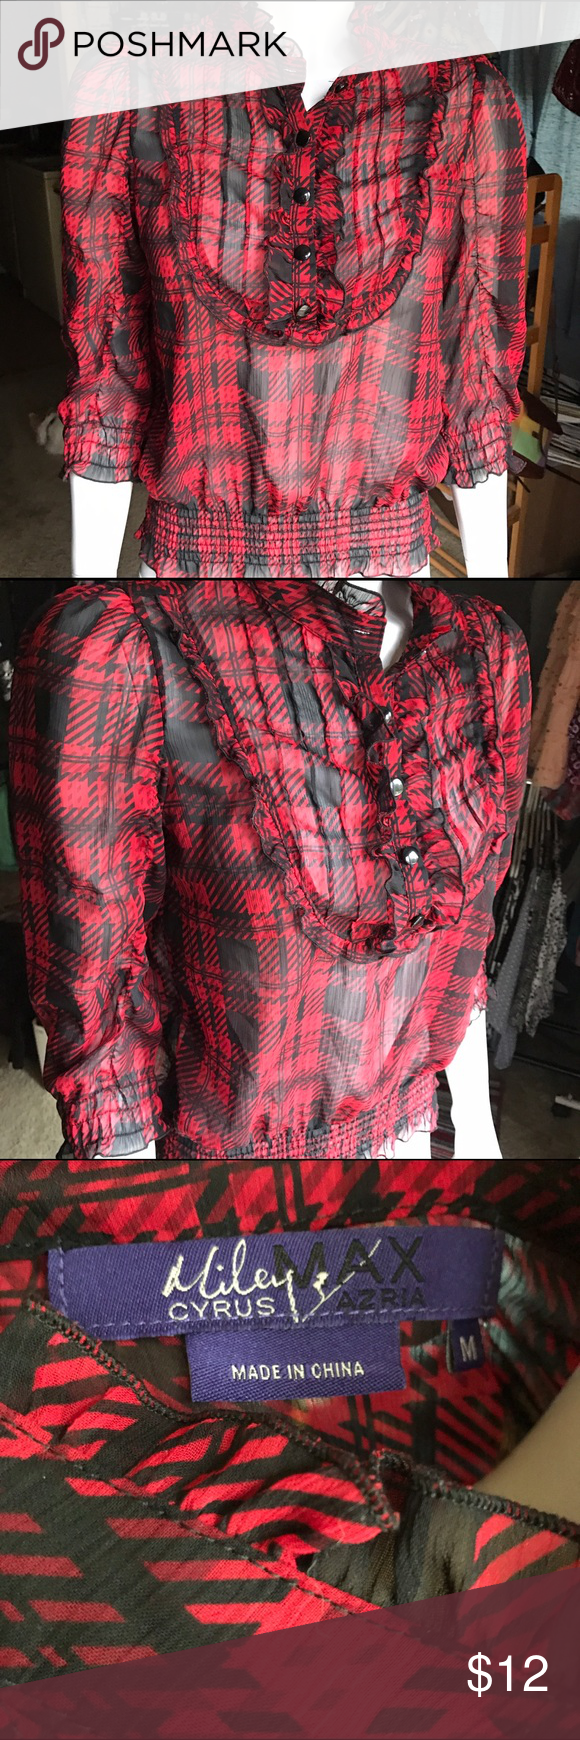 Miley Cyrus Max Azria plaid blouse Red and black plaid chiffon blouse is sheer and super cute! Ruffles and buttons make this top so feminine. Stylish and trendy shirt! Elastic at hems. Miley Cyrus Max Azria Tops Blouses